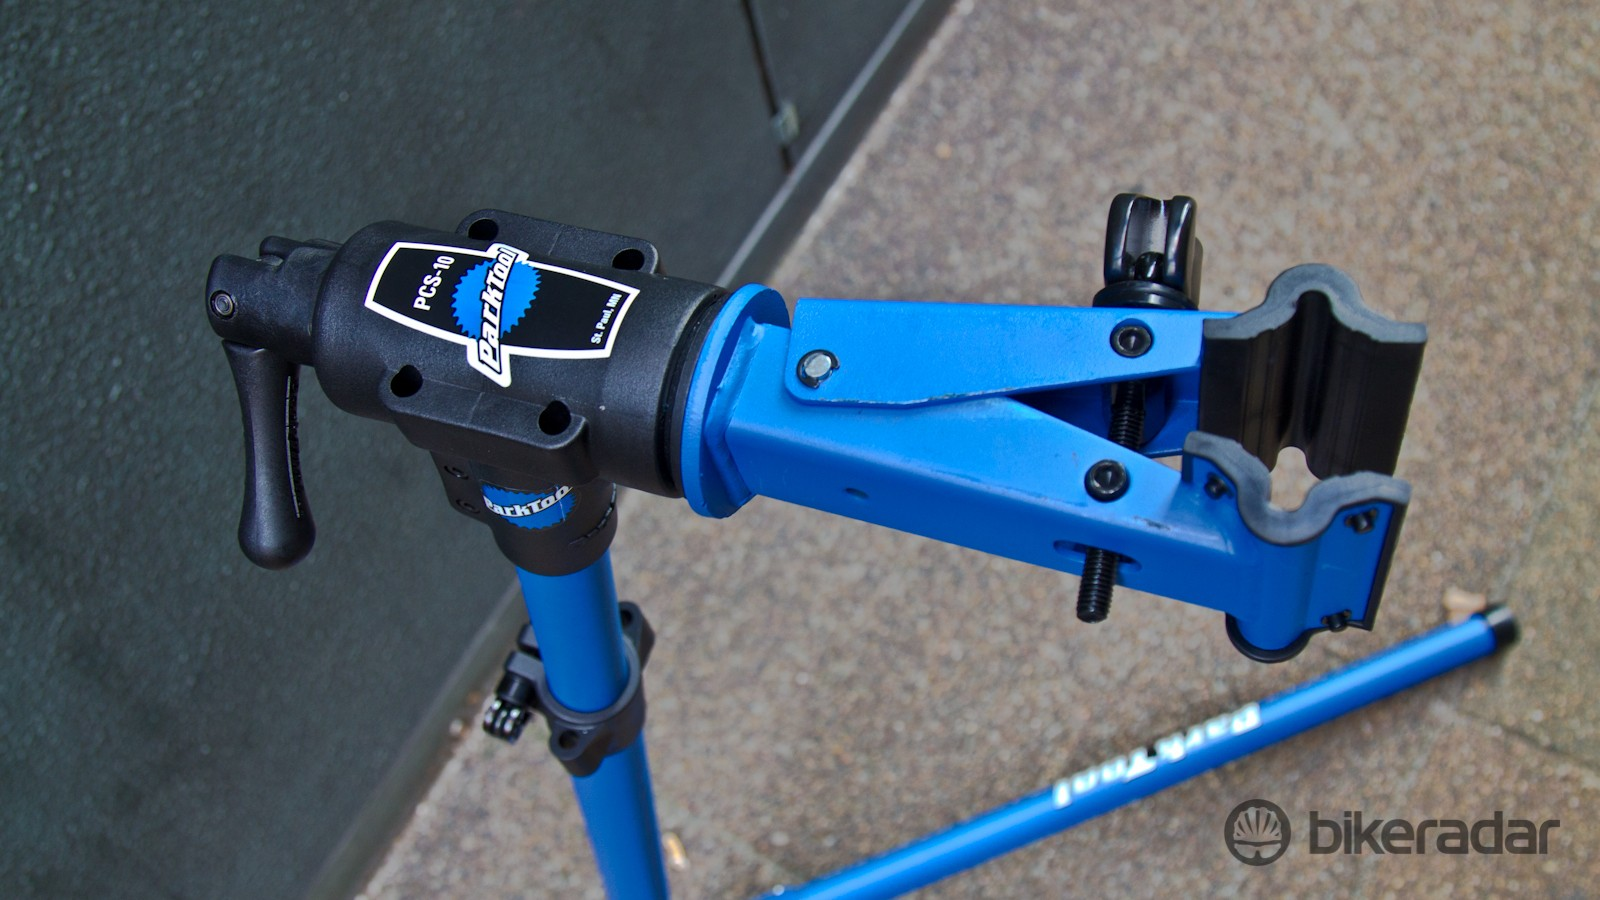 Park Tool PCS-10 home mechanic repair stand - a solid option that will surely last